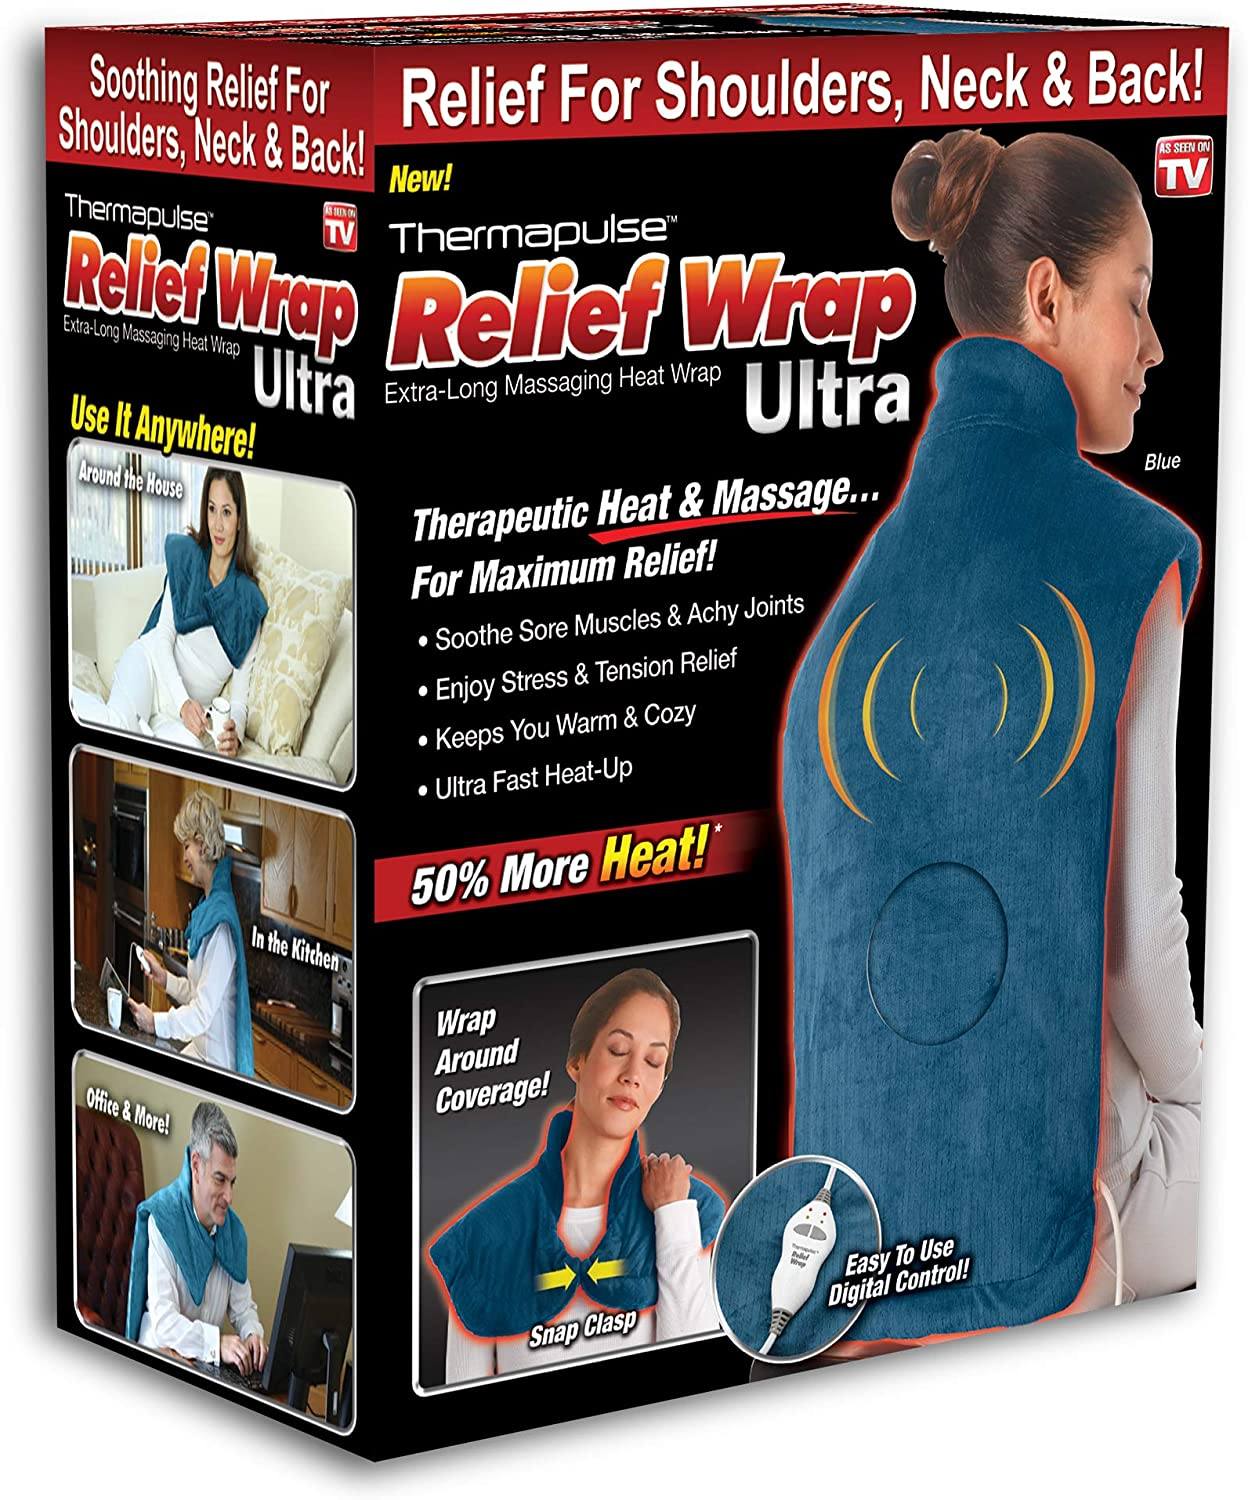 Ontel Thermapulse Relief Wrap Ultra Extra-Long Massaging Heat Wrap